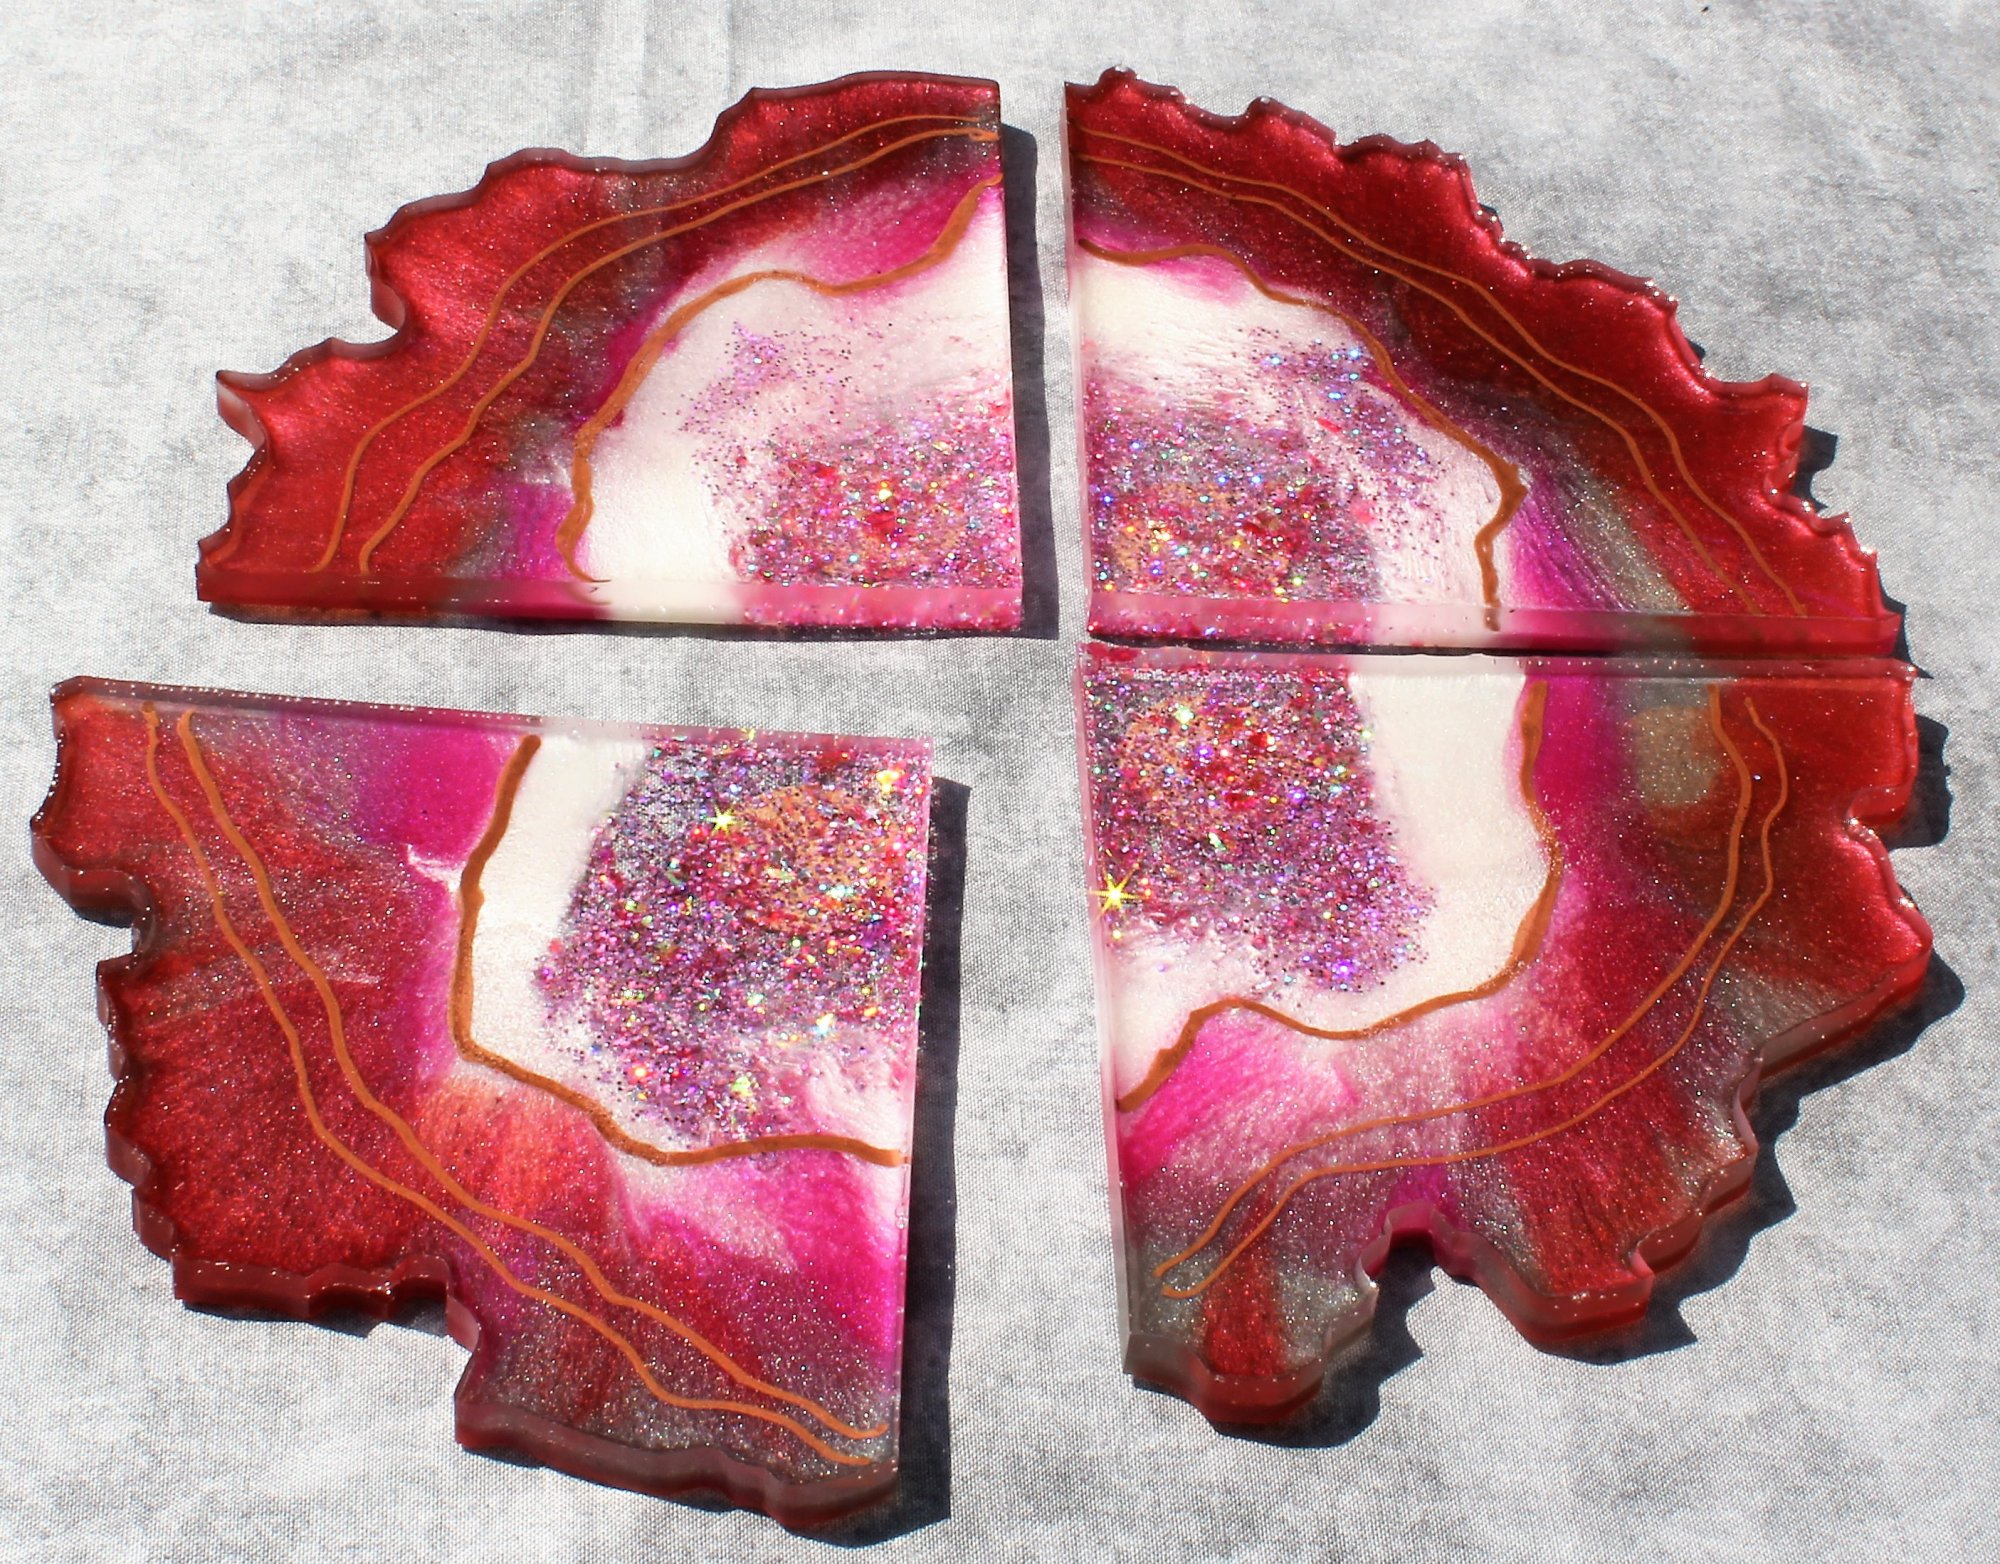 Red and Pink Resin Geode Slice Coasters with Holographic Glitter